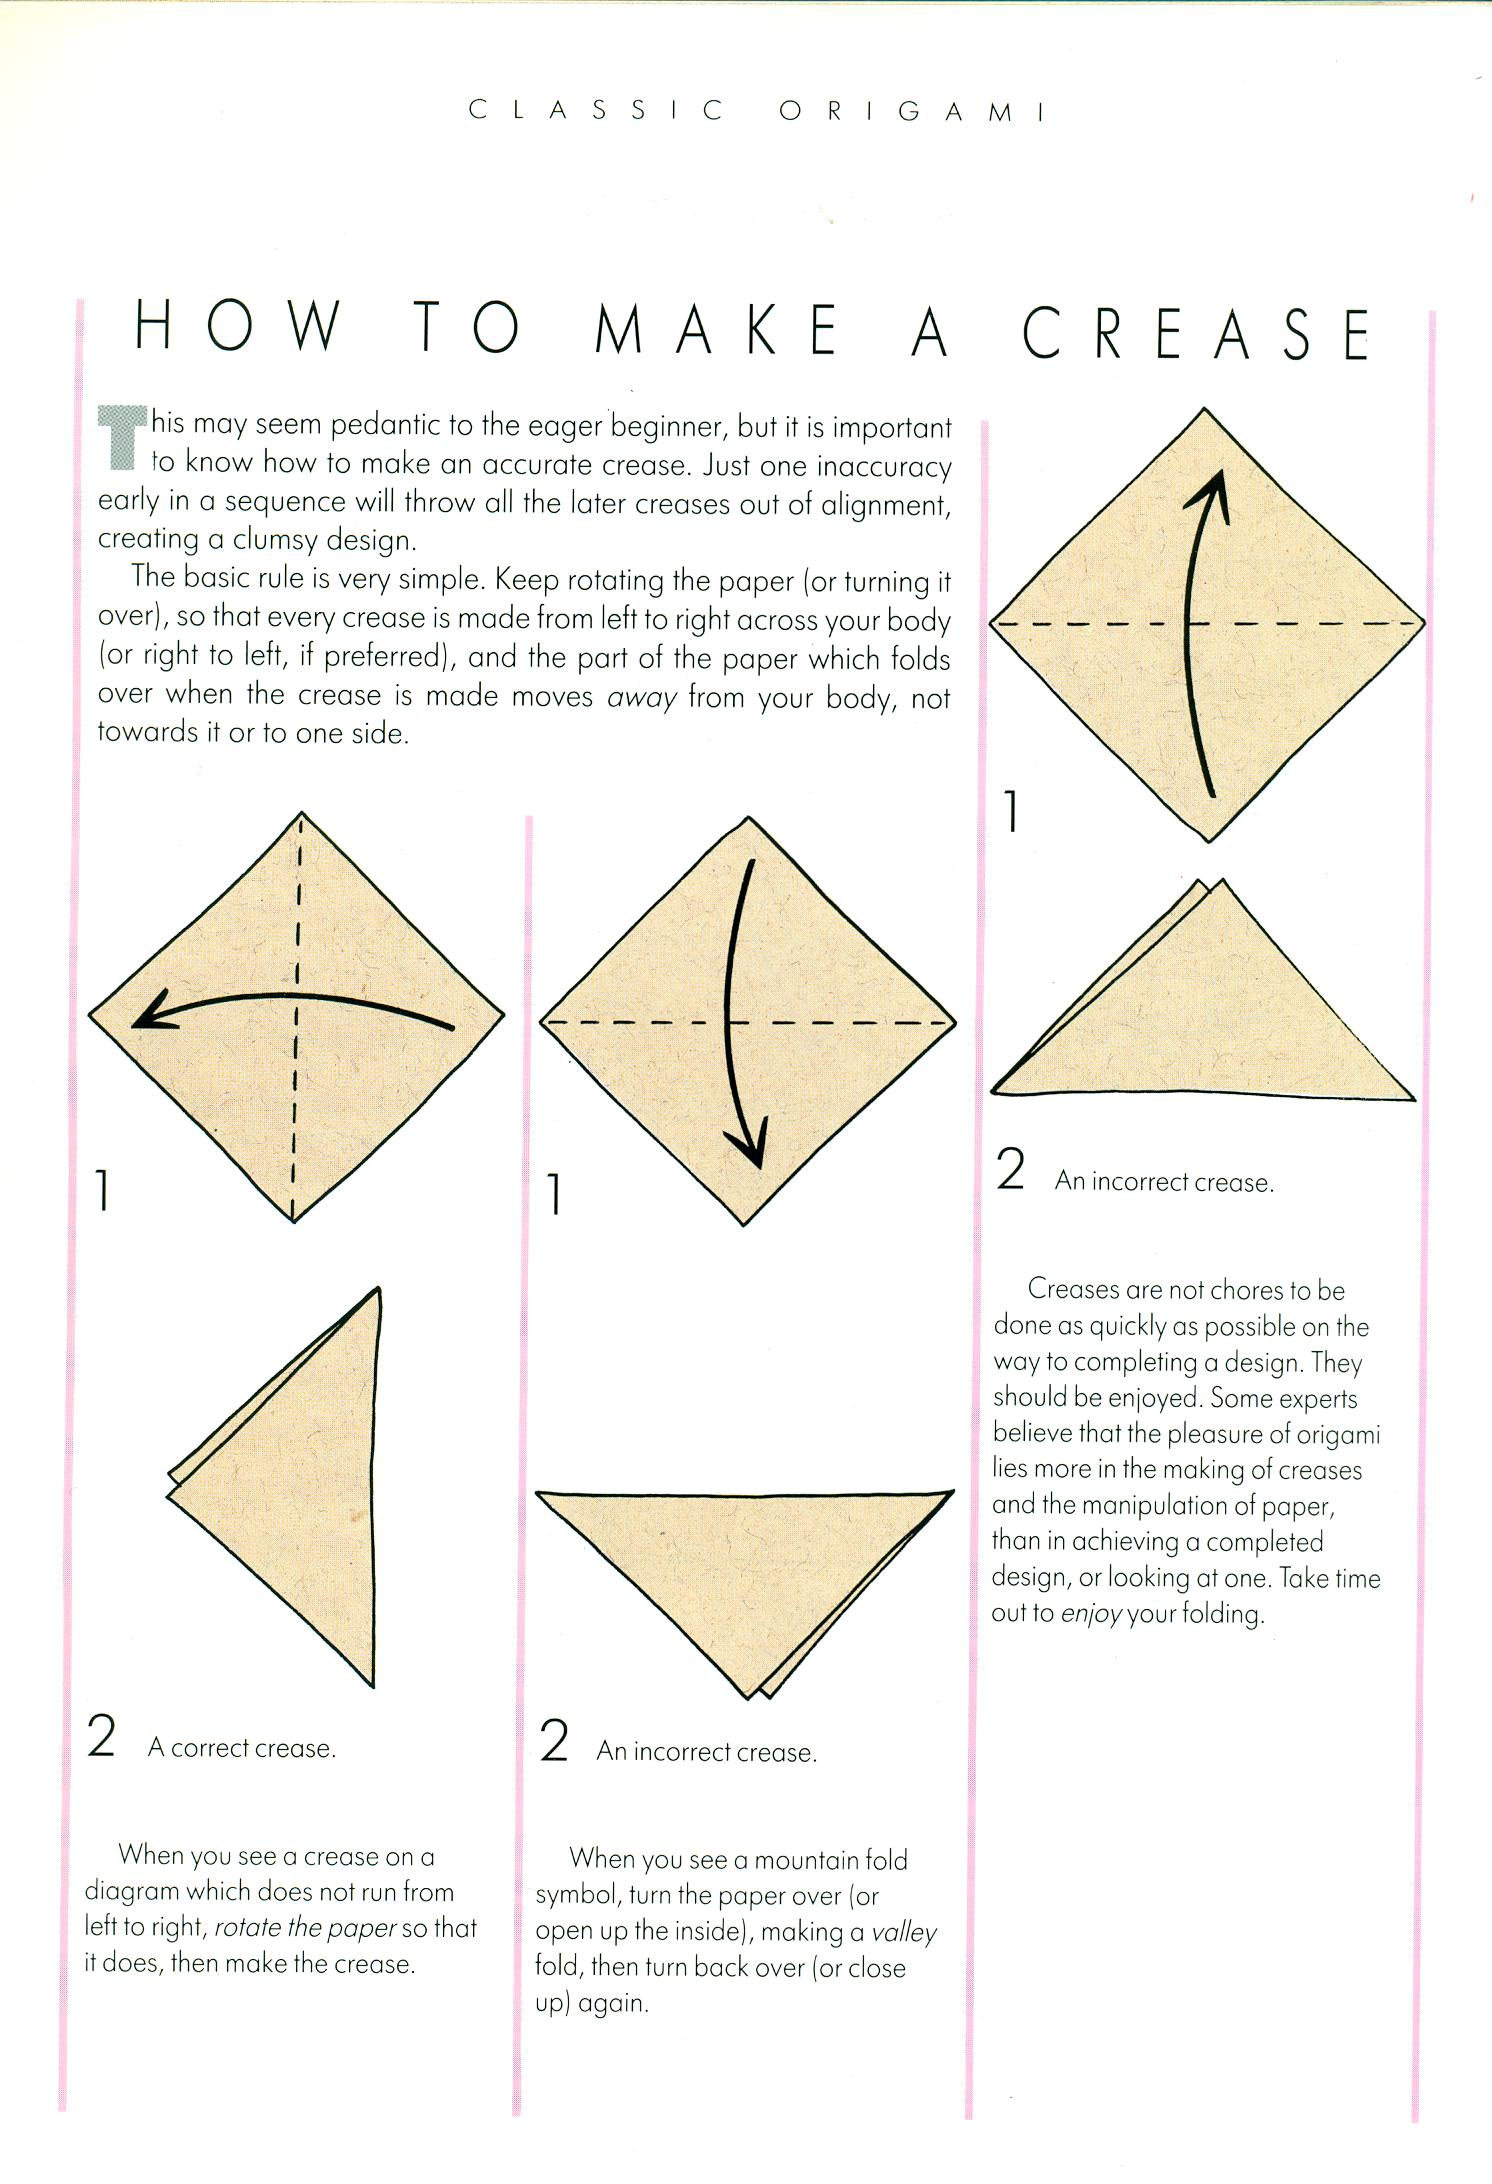 Origami Symbols And Basic Techniques Artclubblog